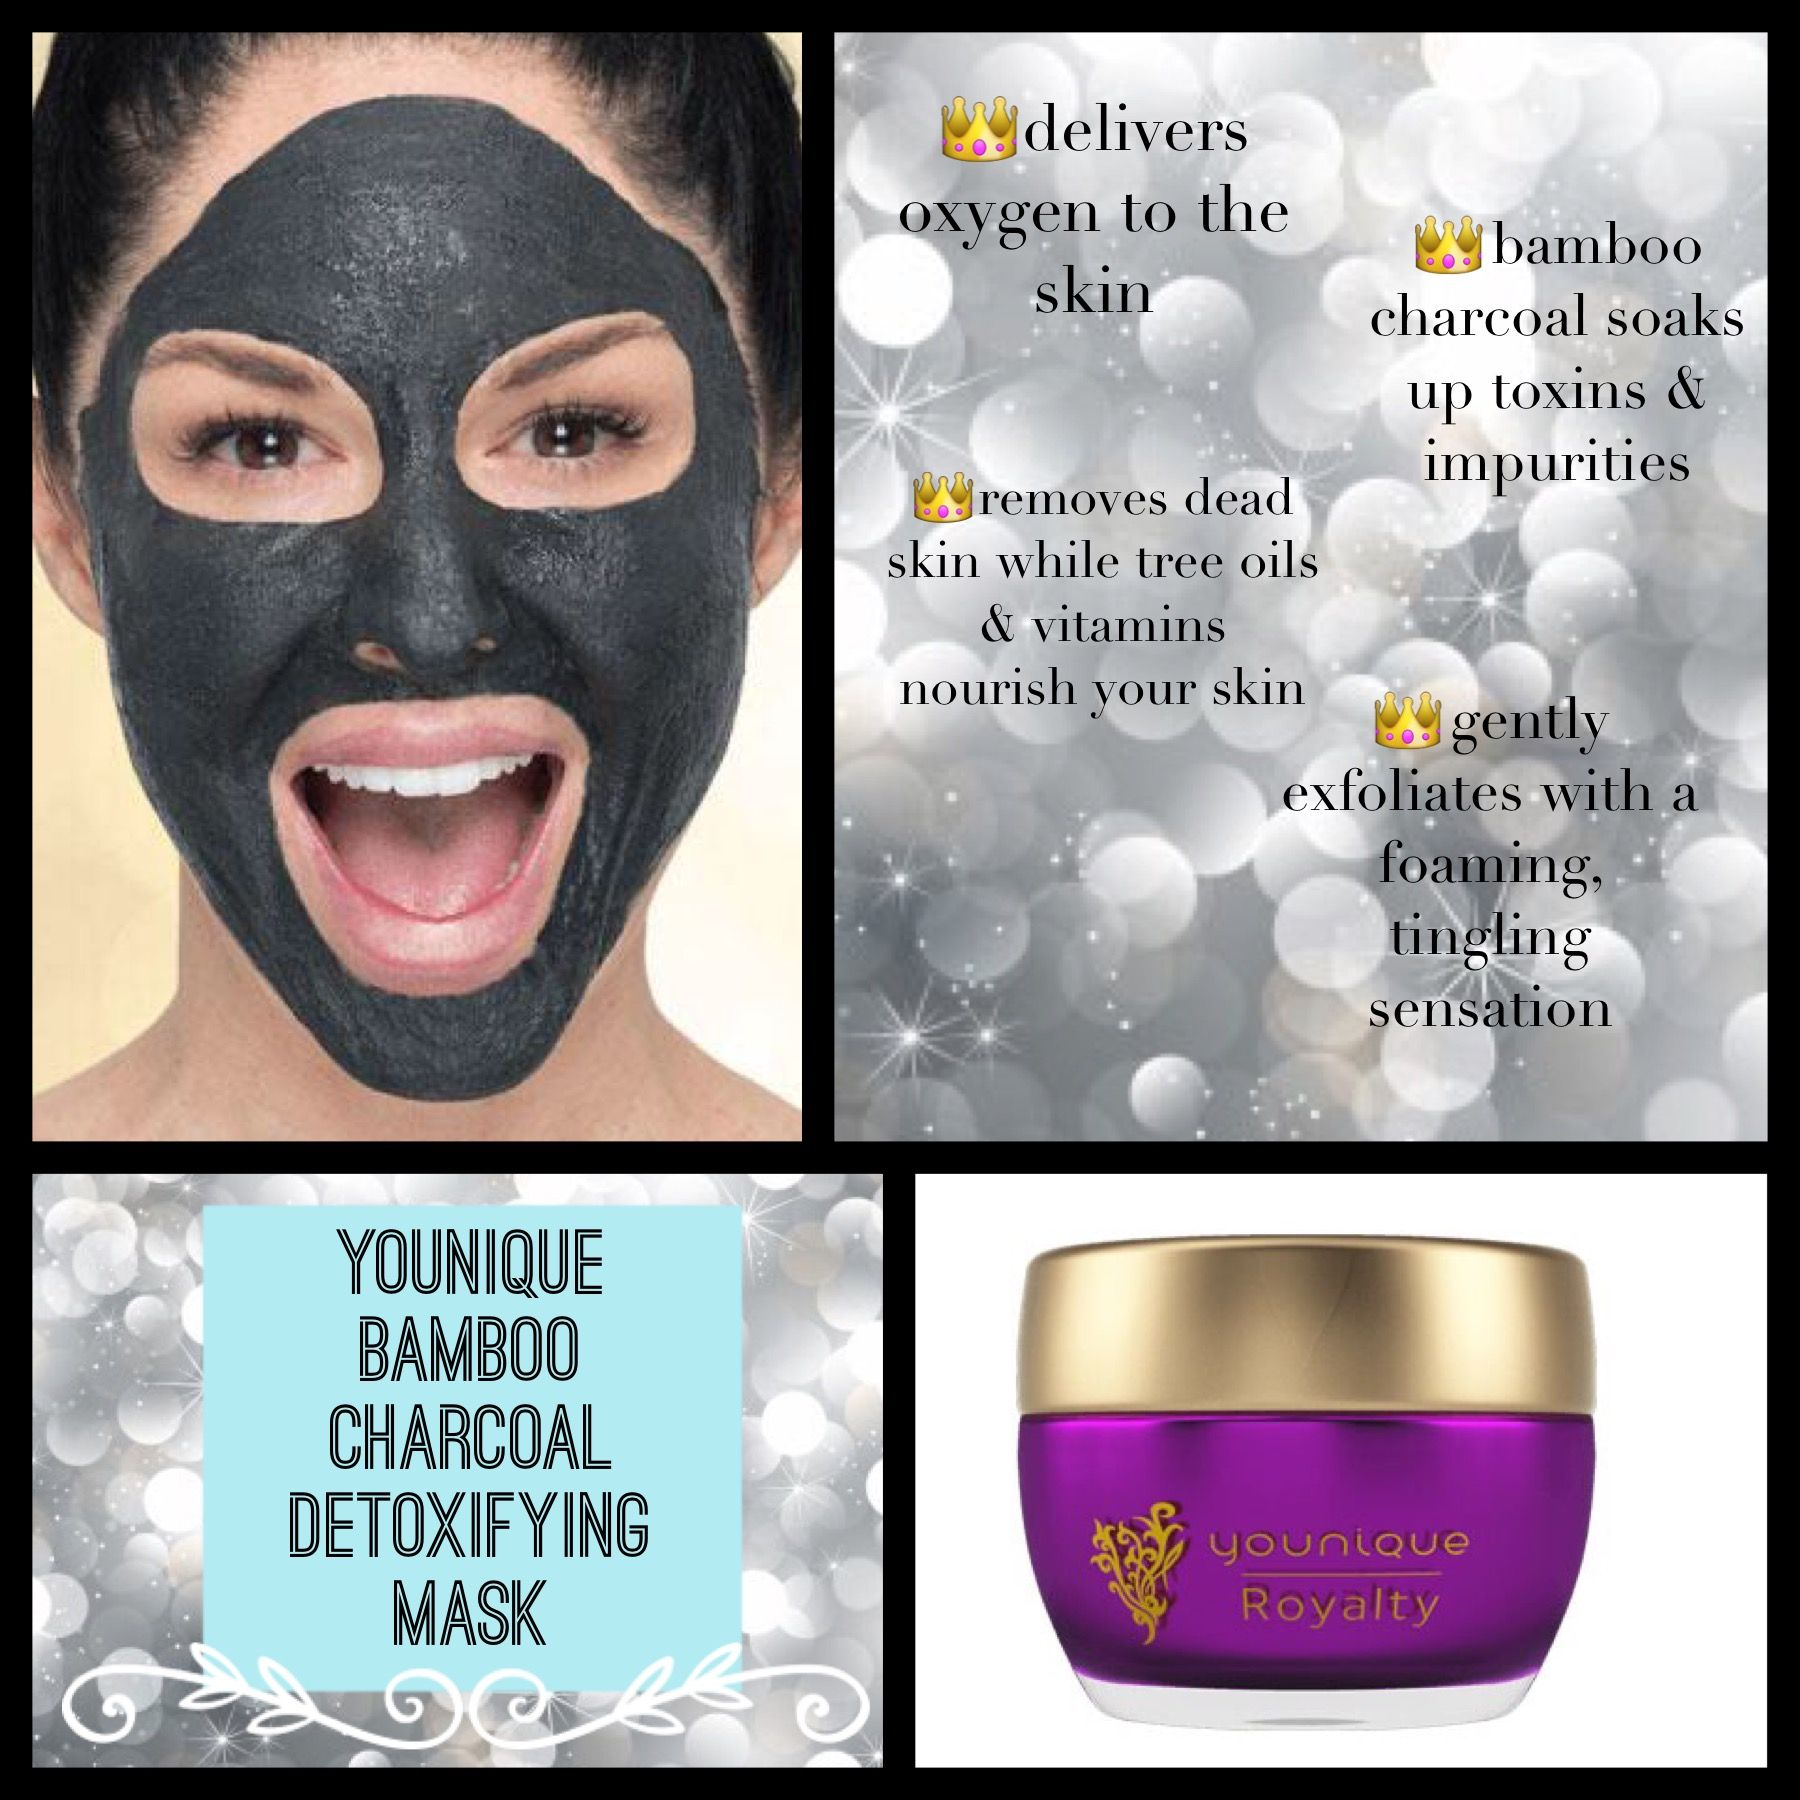 Best 25 Bamboo Charcoal Mask Ideas On Pinterest: Pin By Serendipity On Younique Products!!